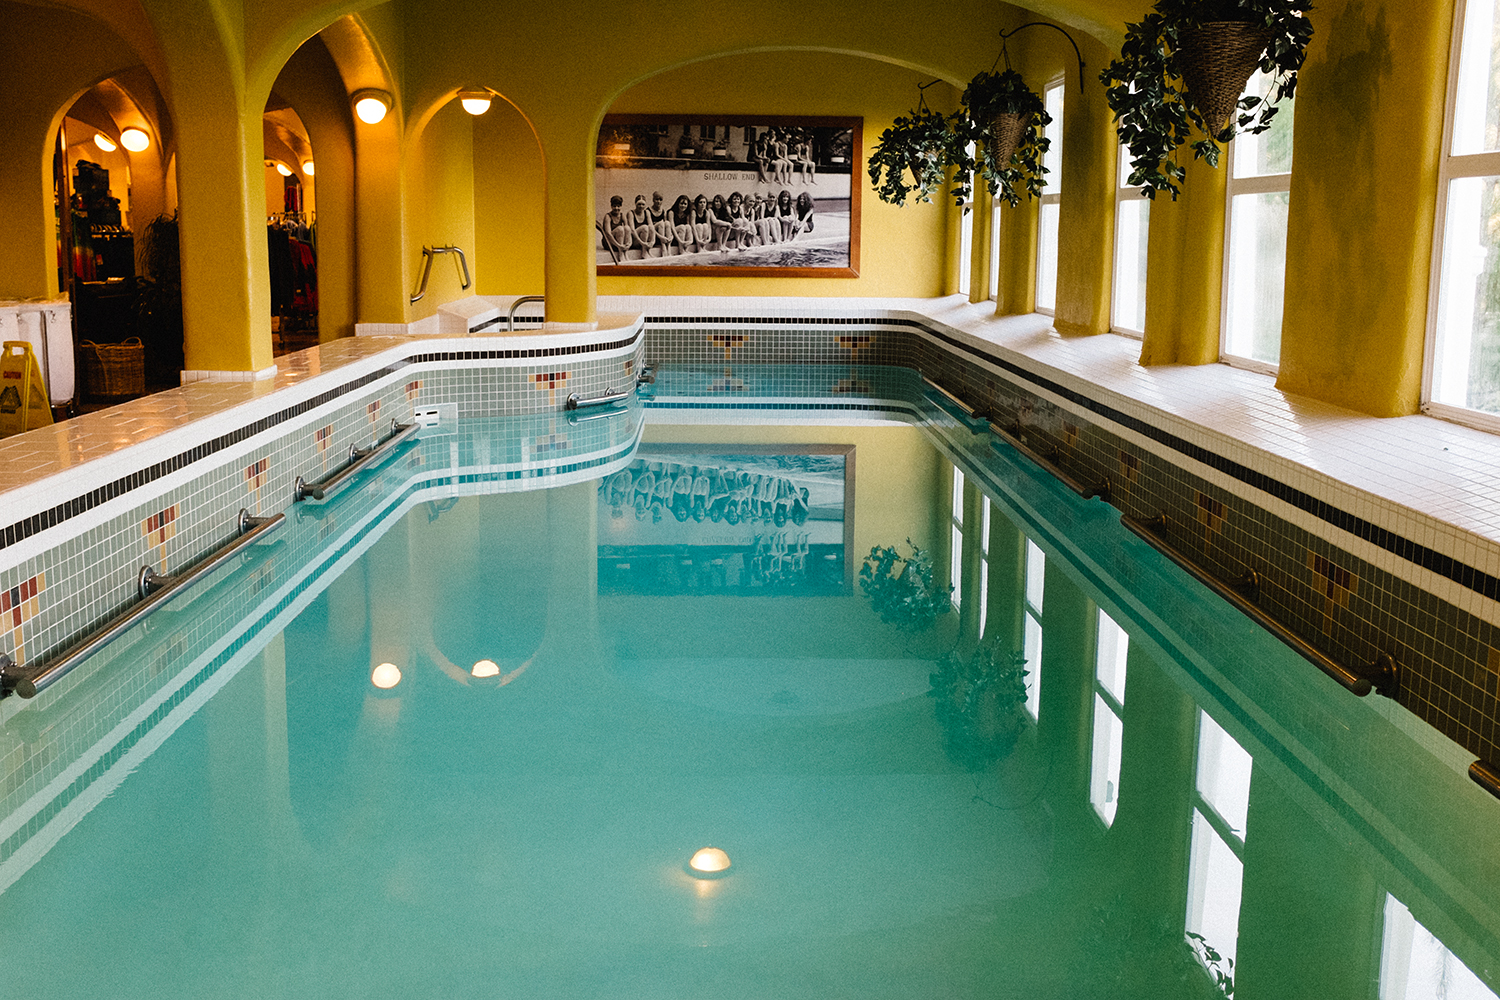 The heated salt water pool is part of the wonderfully preserved facilities at Rosario Resort